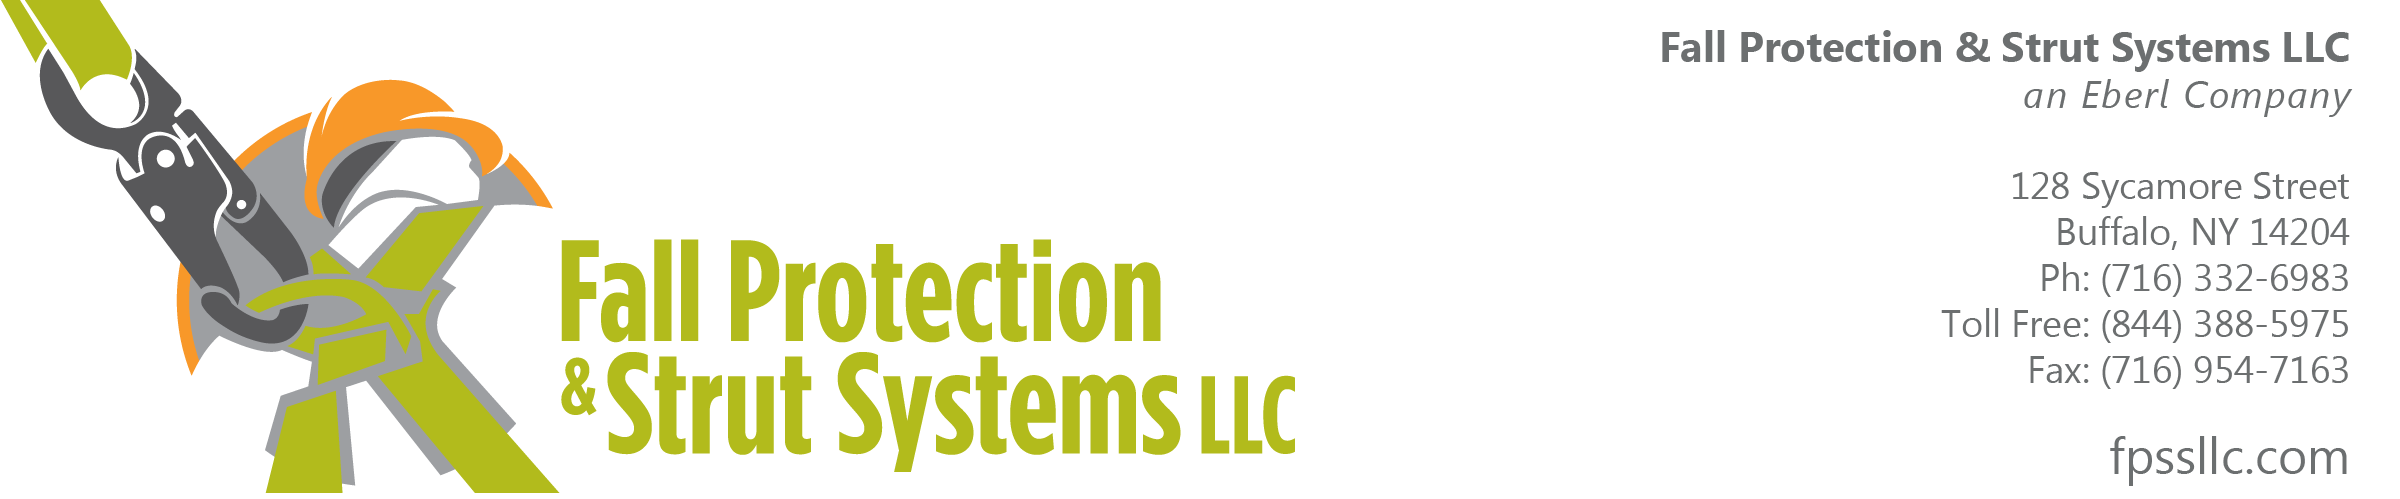 Fall Protection & Strut Systems Official Press Release